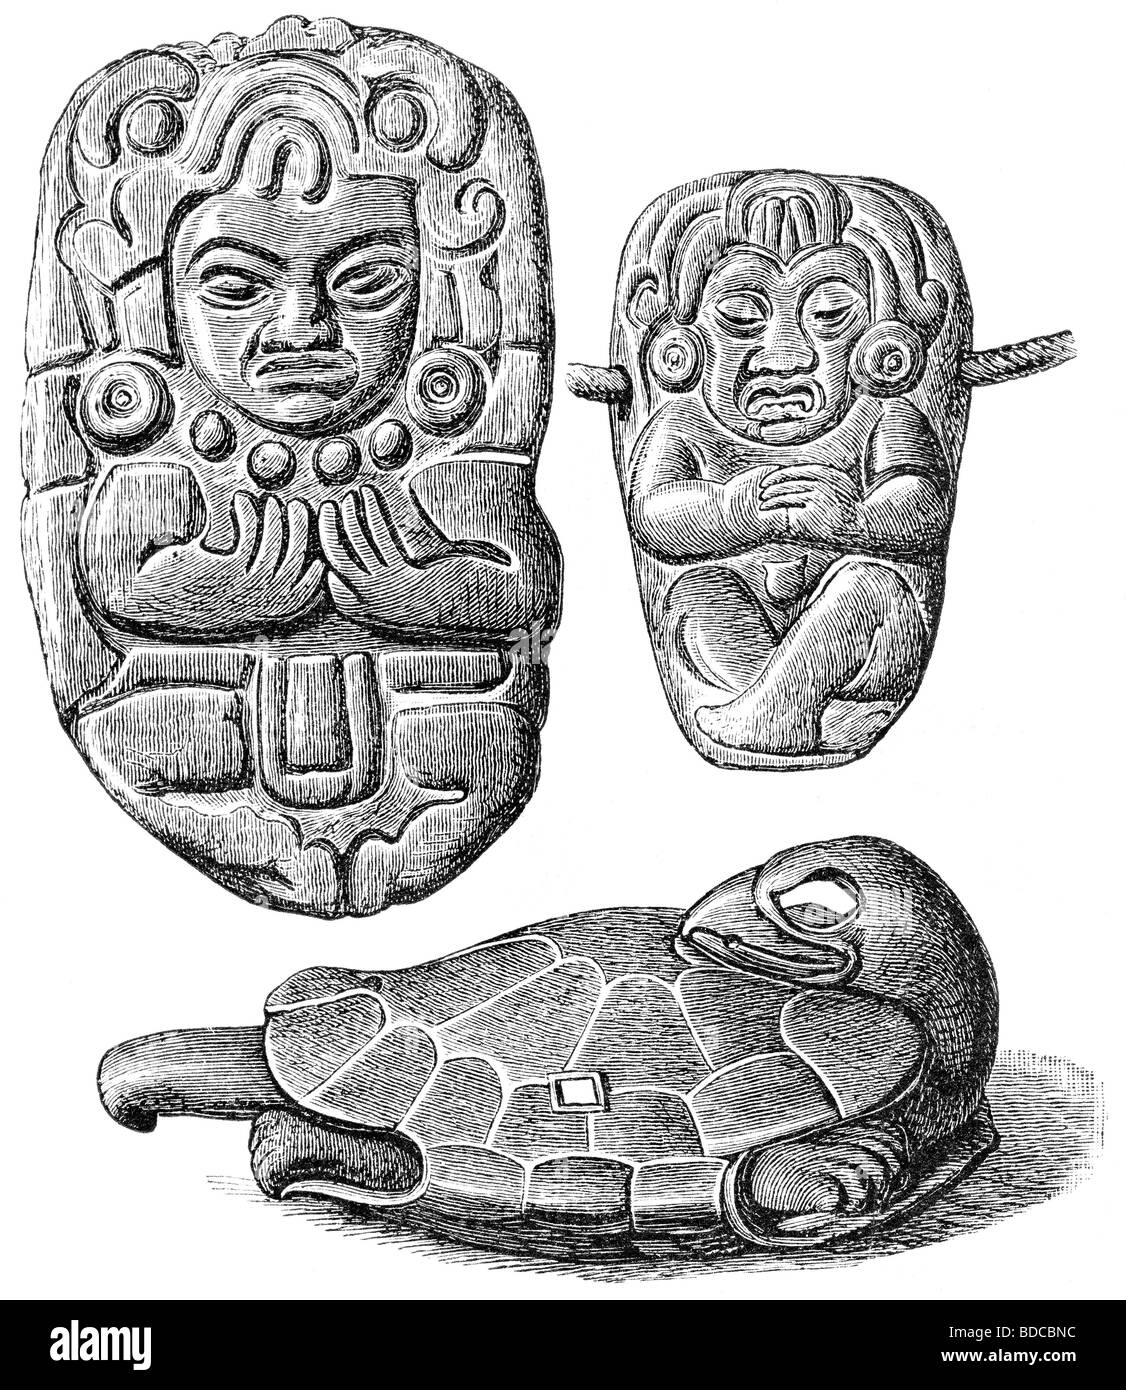 archaeology / archeology, Mexico, Aztecs, old Mexican stone sculptures, wood engraving, historic, historical, Central - Stock Image